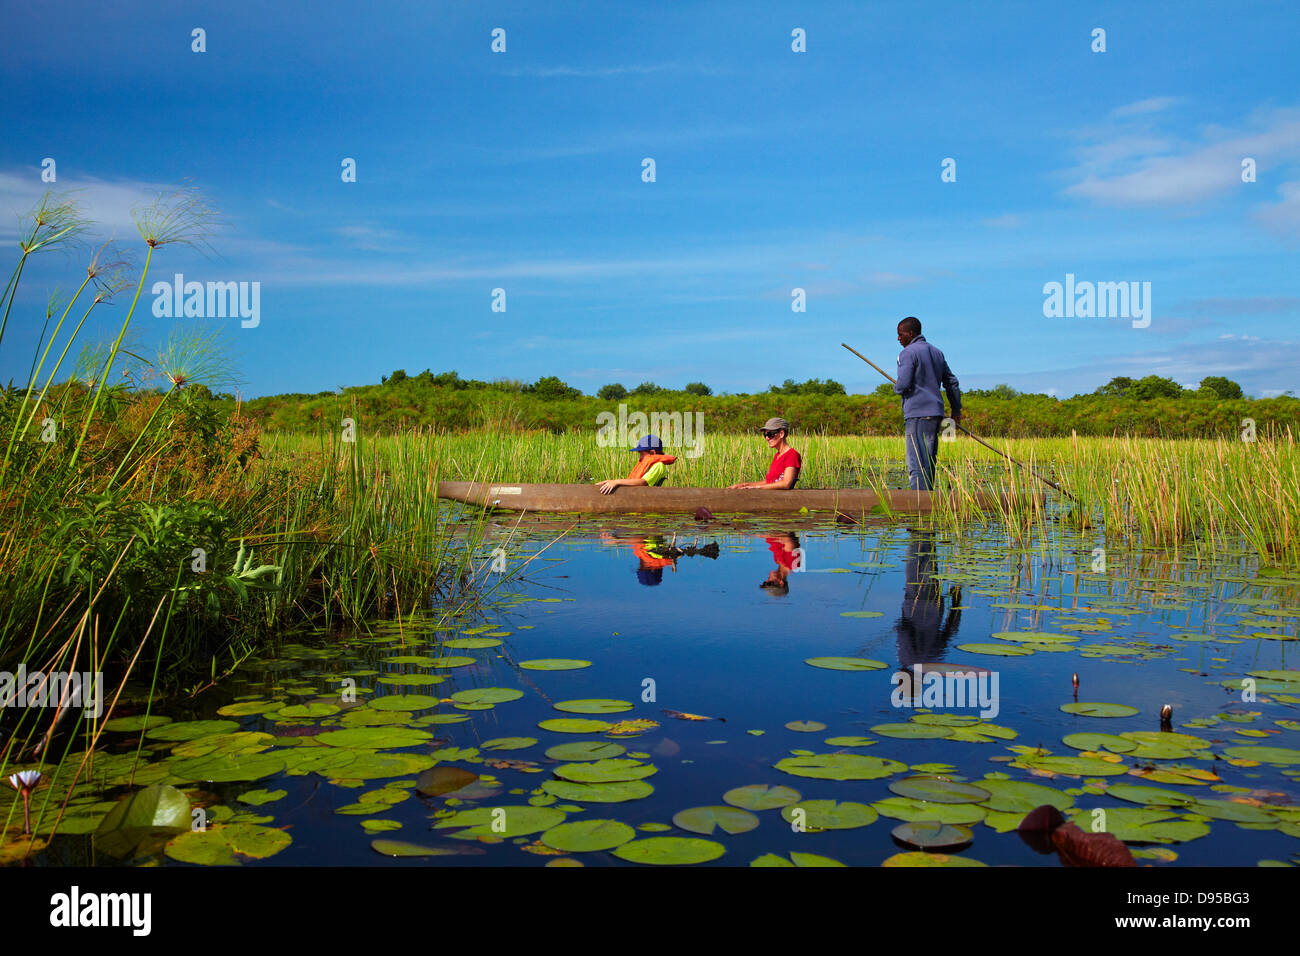 Tourists being poled though lily pads in mokoro (dugout canoe), Okavango Delta, Botswana, Africa - Stock Image